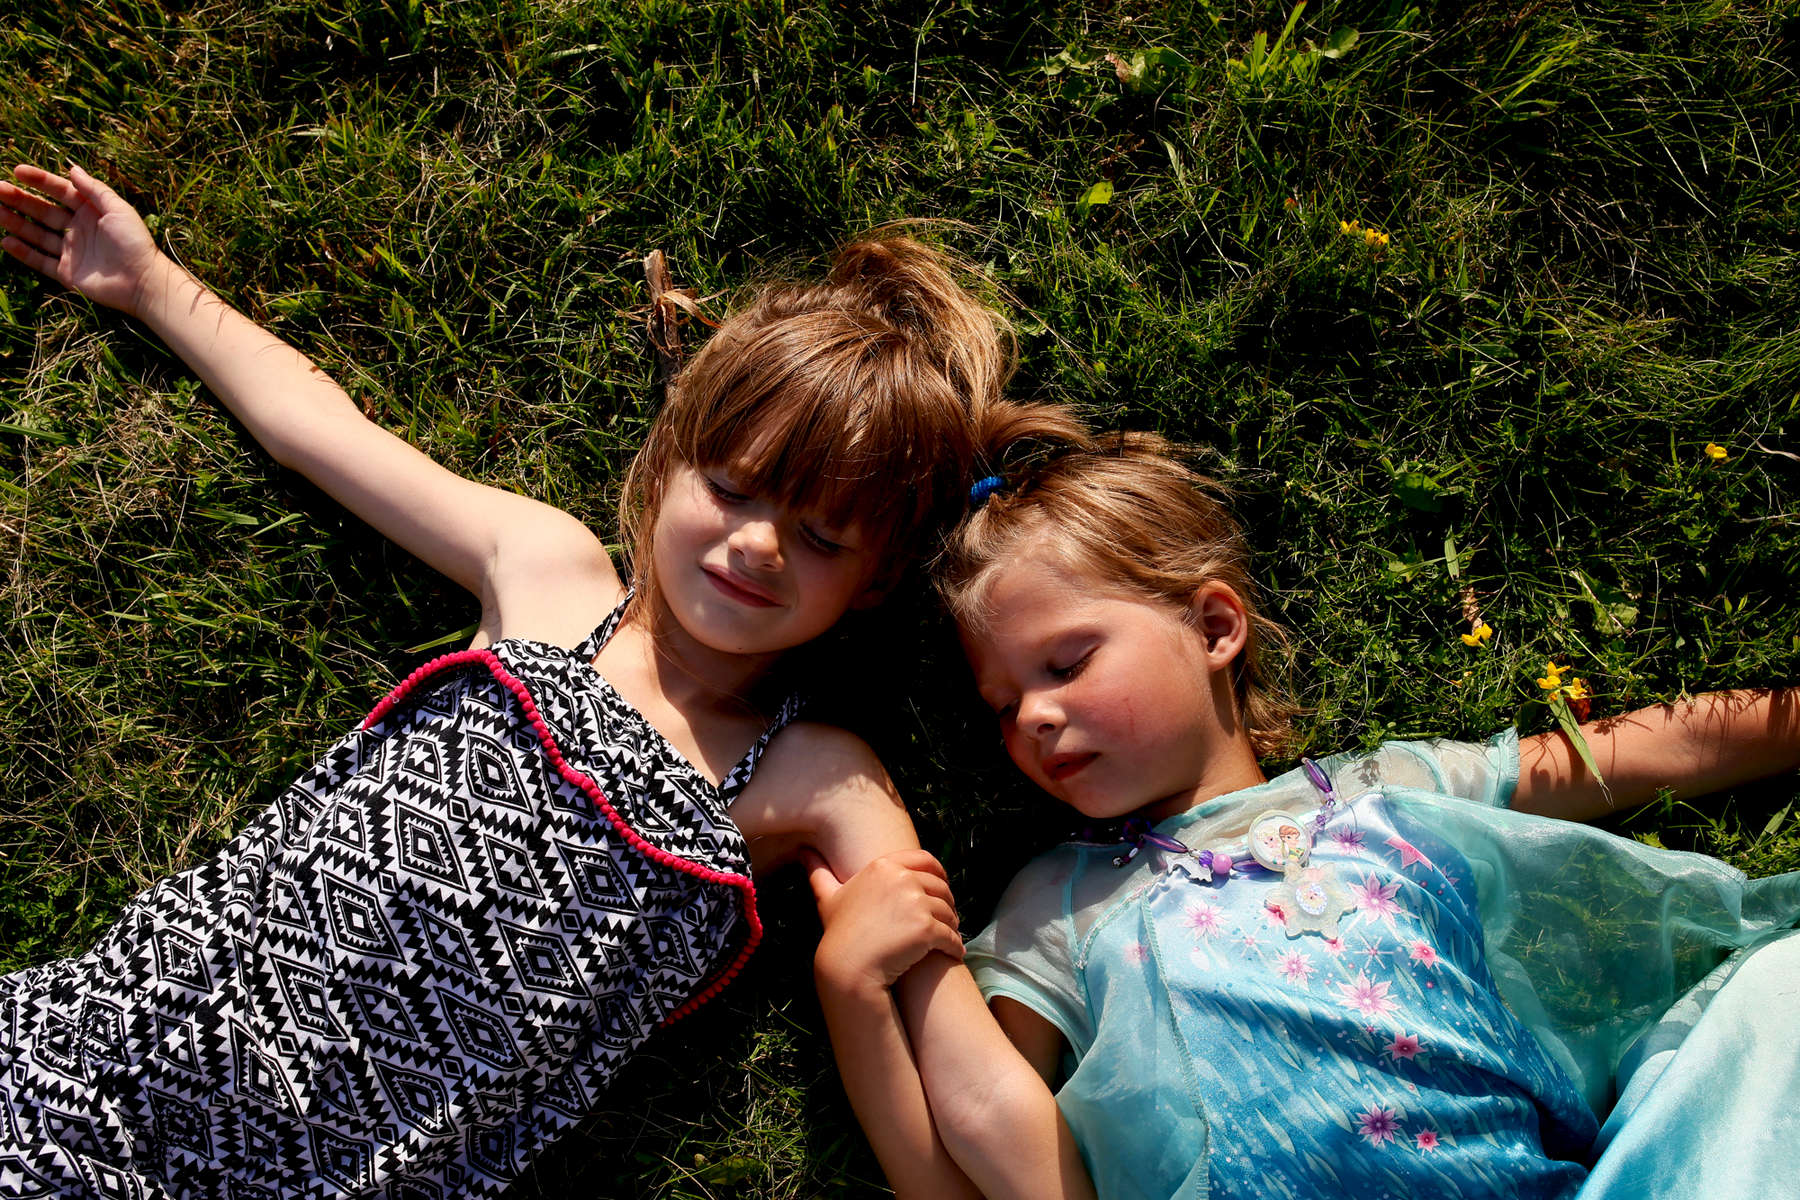 Lila and Violet lay on the grass after pretending to make snow angels on the front lawn of their grandmother's house.